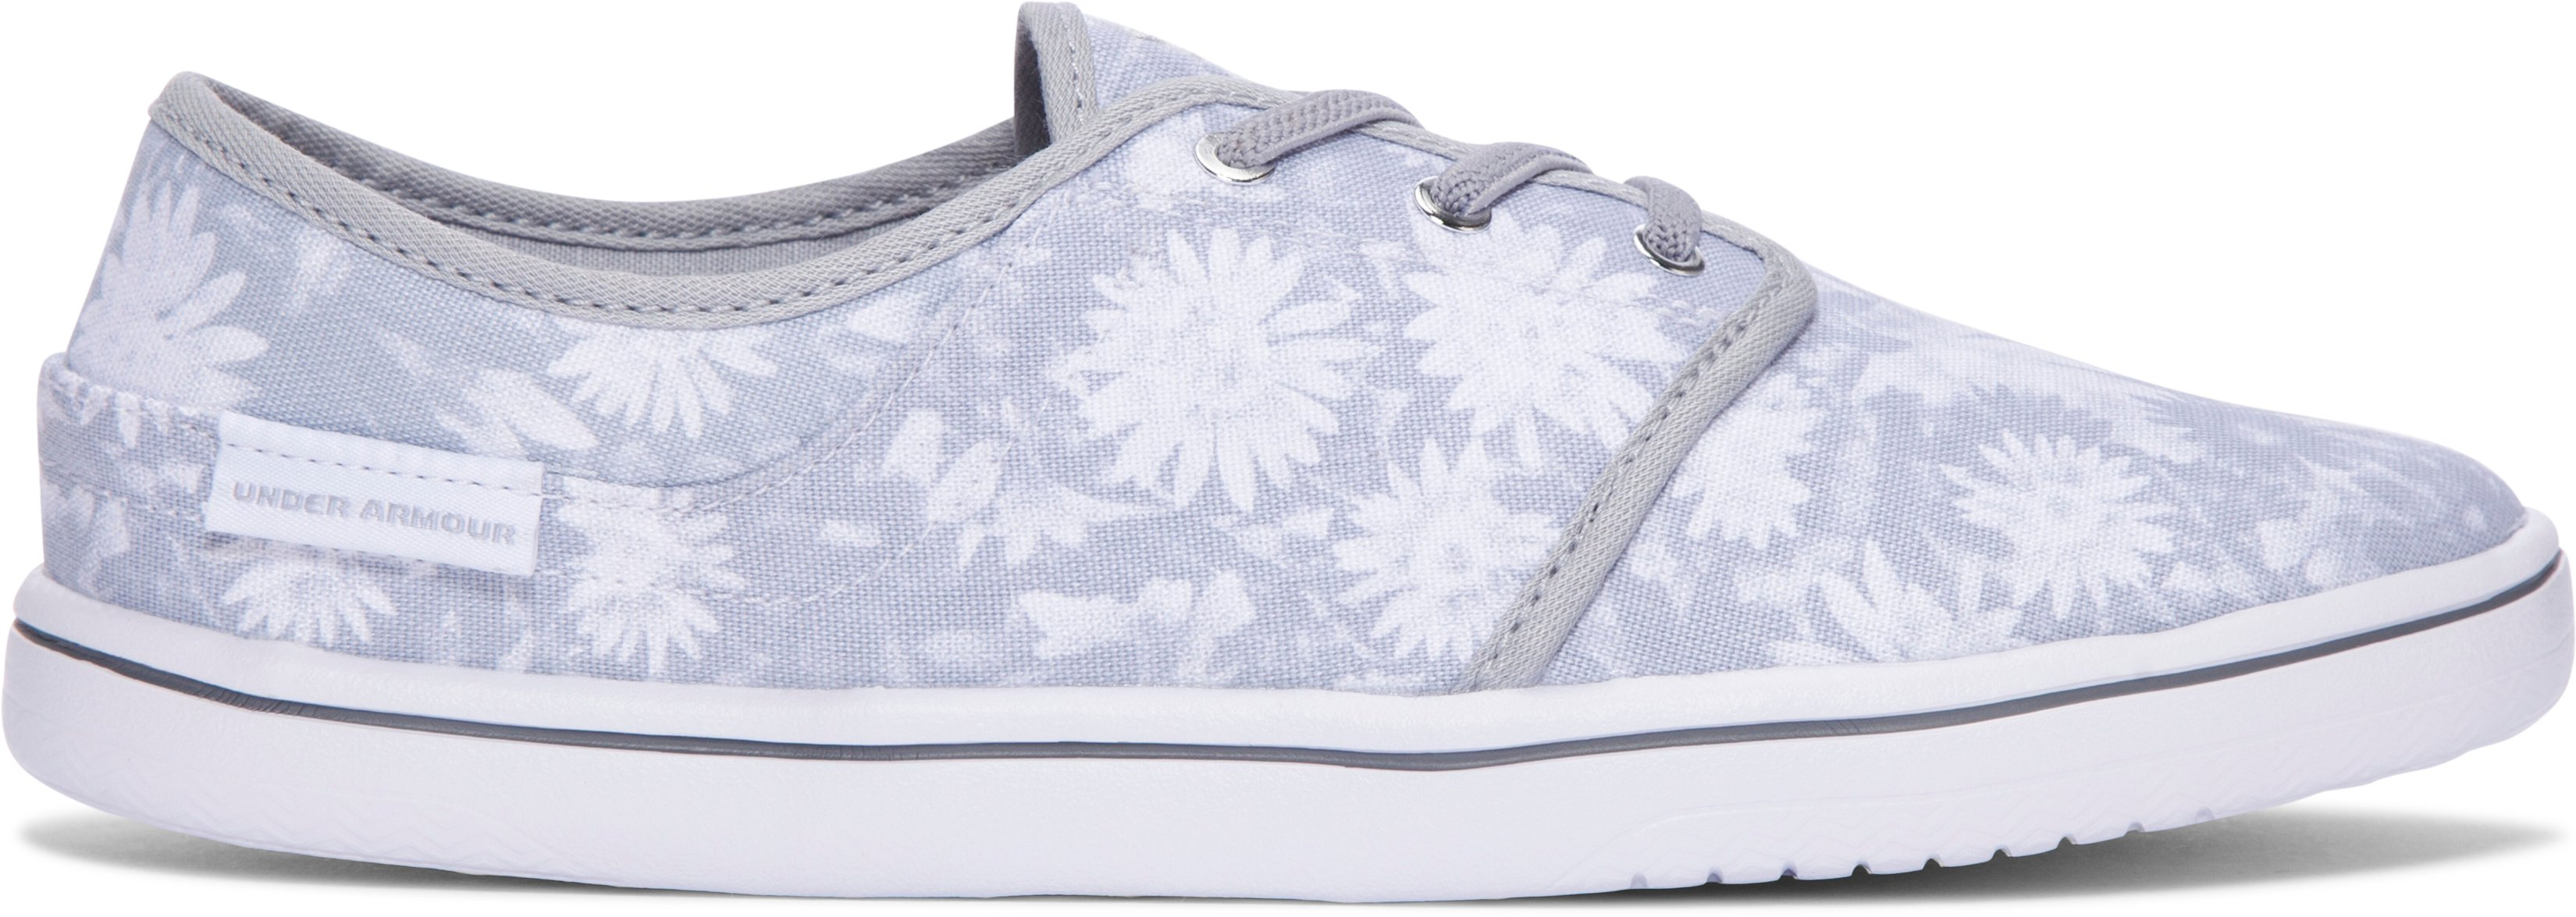 Women's UA Street Encounter Floral Shoes, White